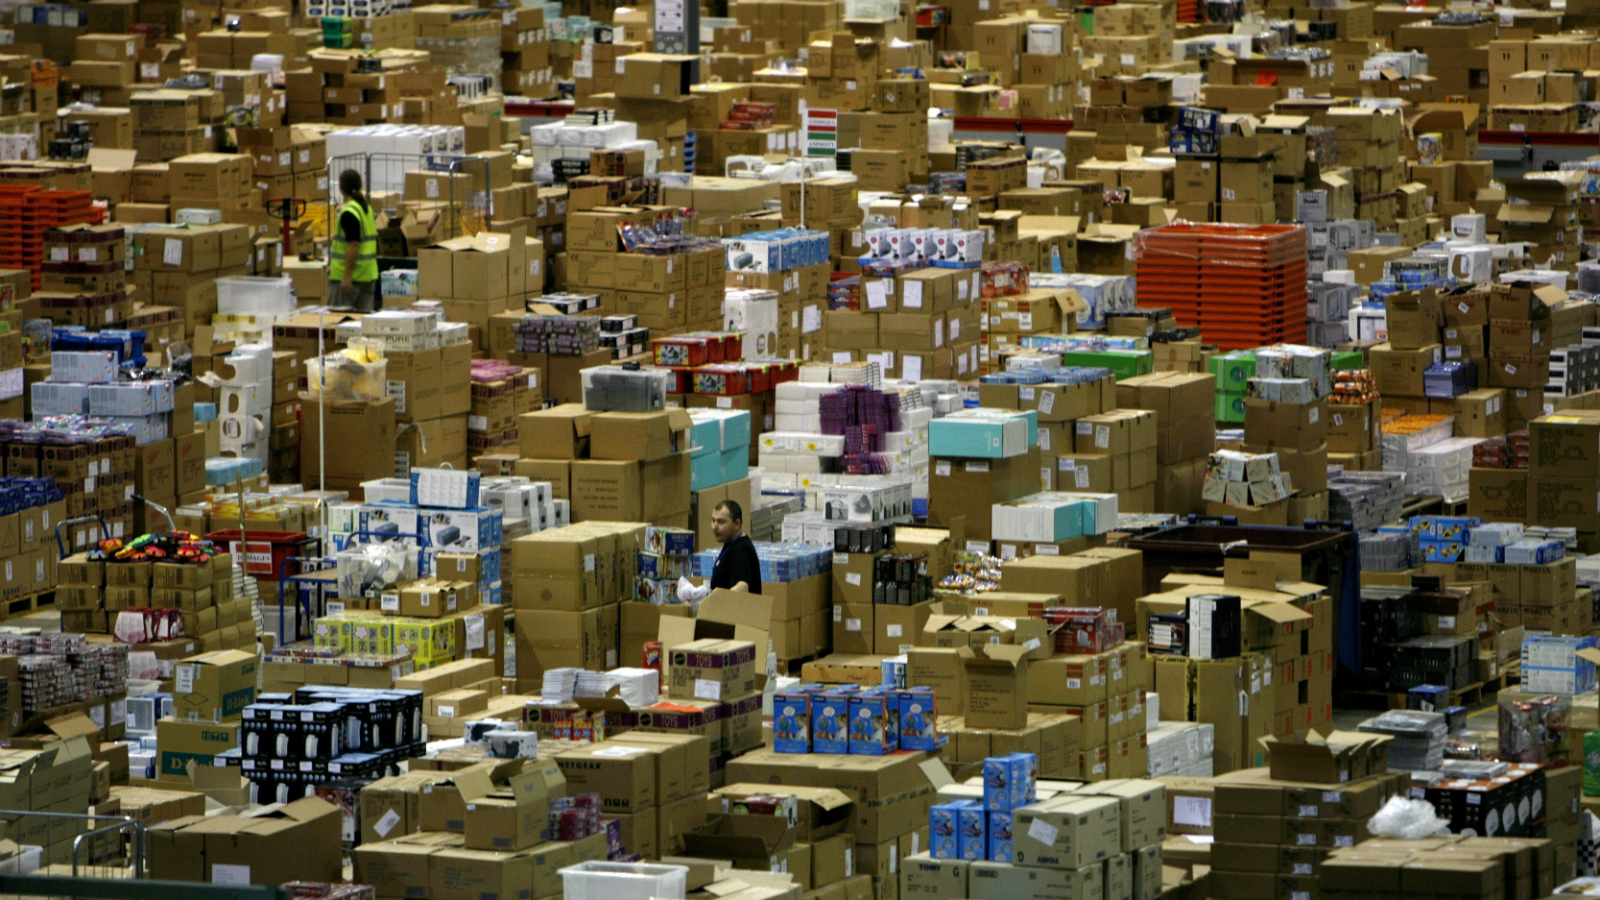 Workers are seen in the Amazon.co.uk warehouse in Milton Keynes, north of London, Britain November 17, 2006.